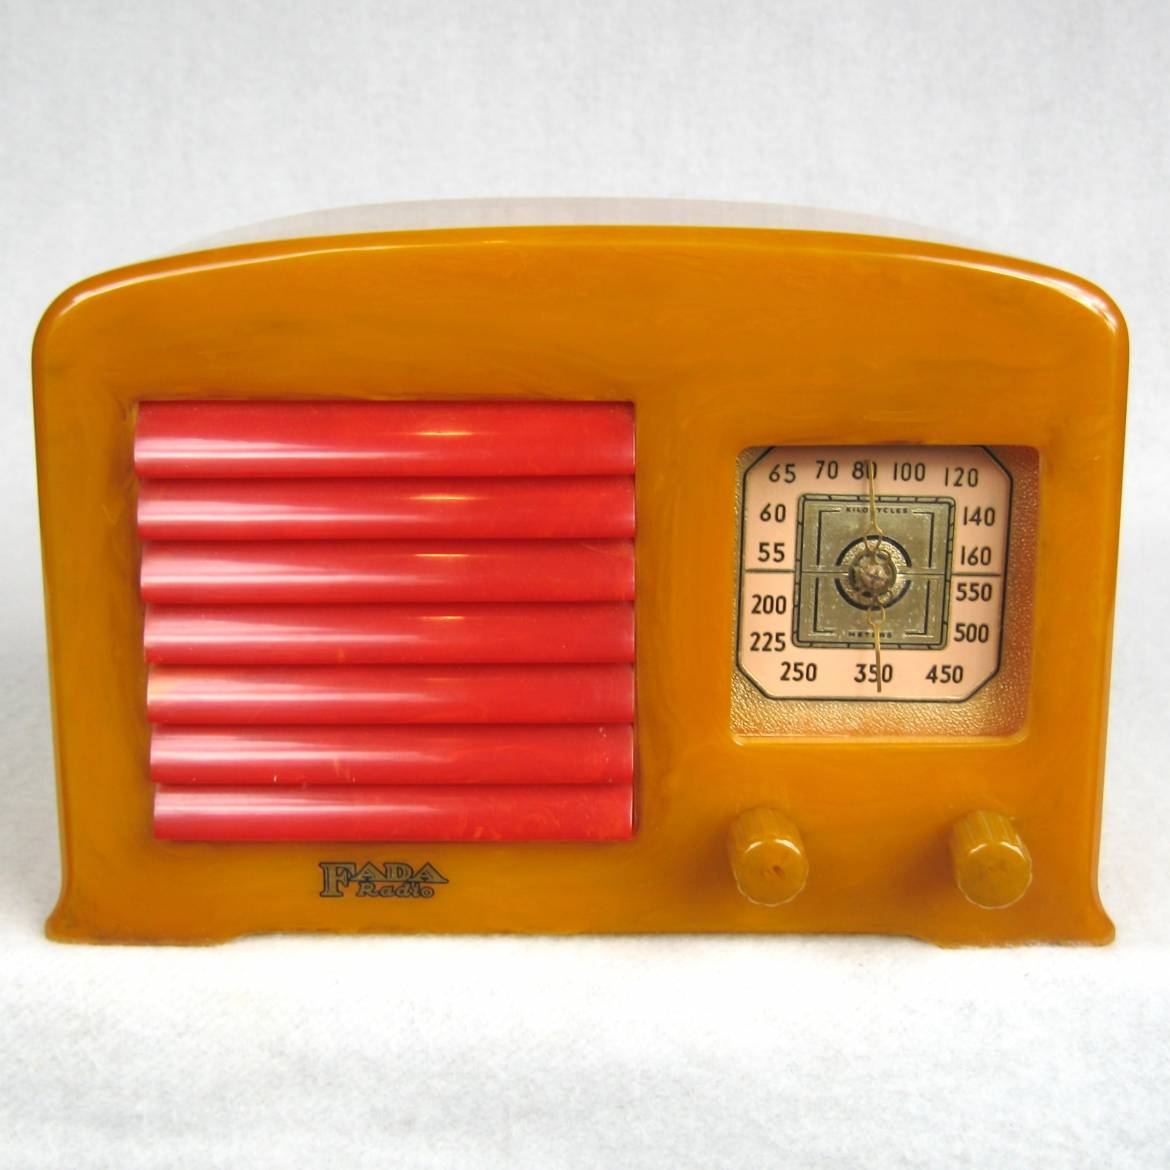 1938 FADA 53 Yellow with Red Grill Bakelite Catalin Art Deco Radio